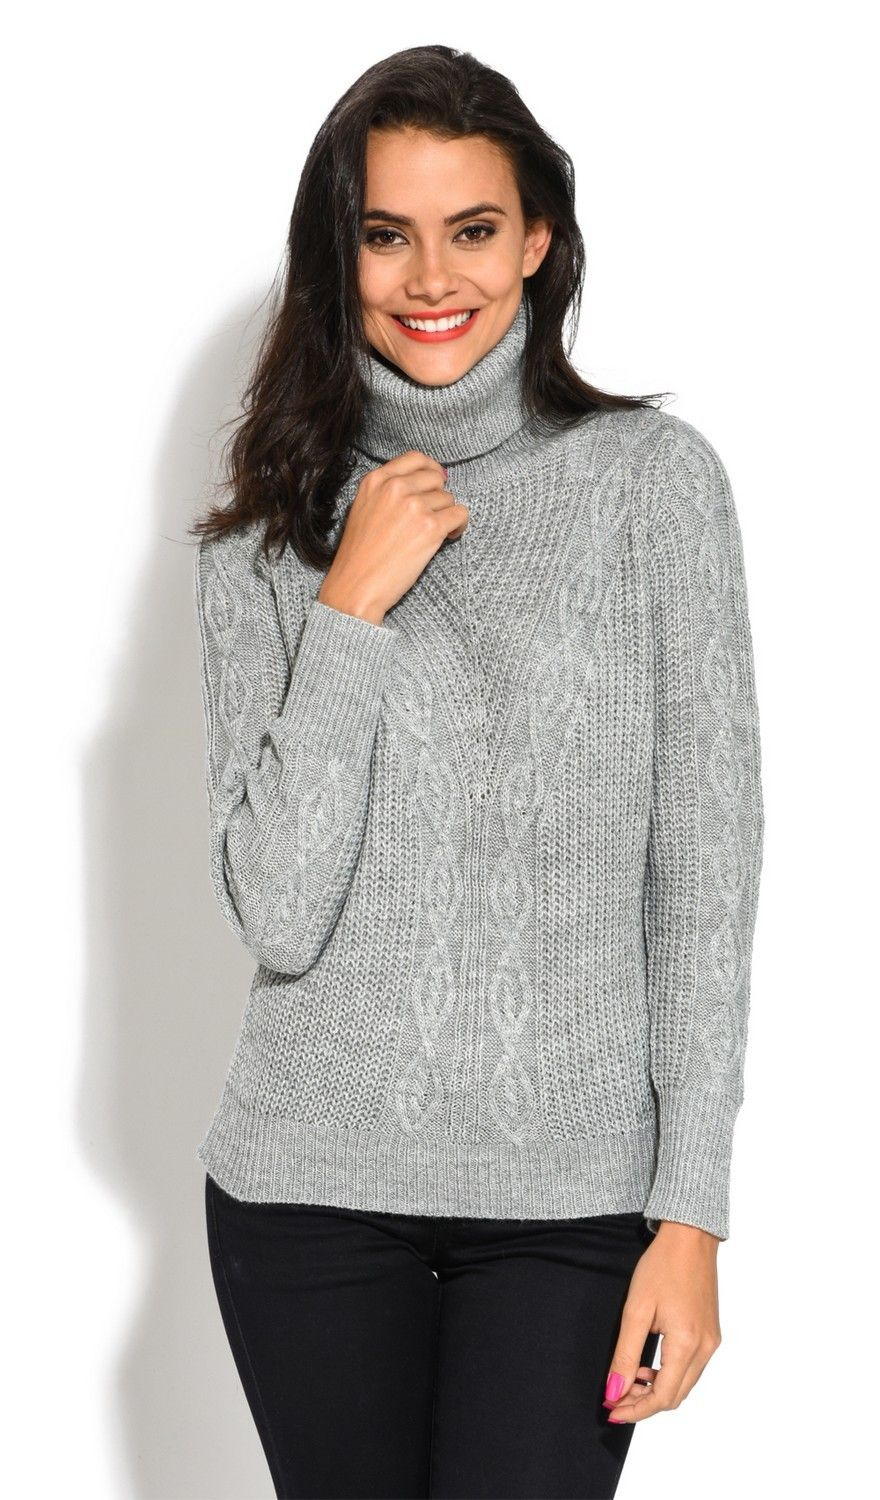 Assuili Roll Neck Long Sleeve Ribbed Sweater in Grey